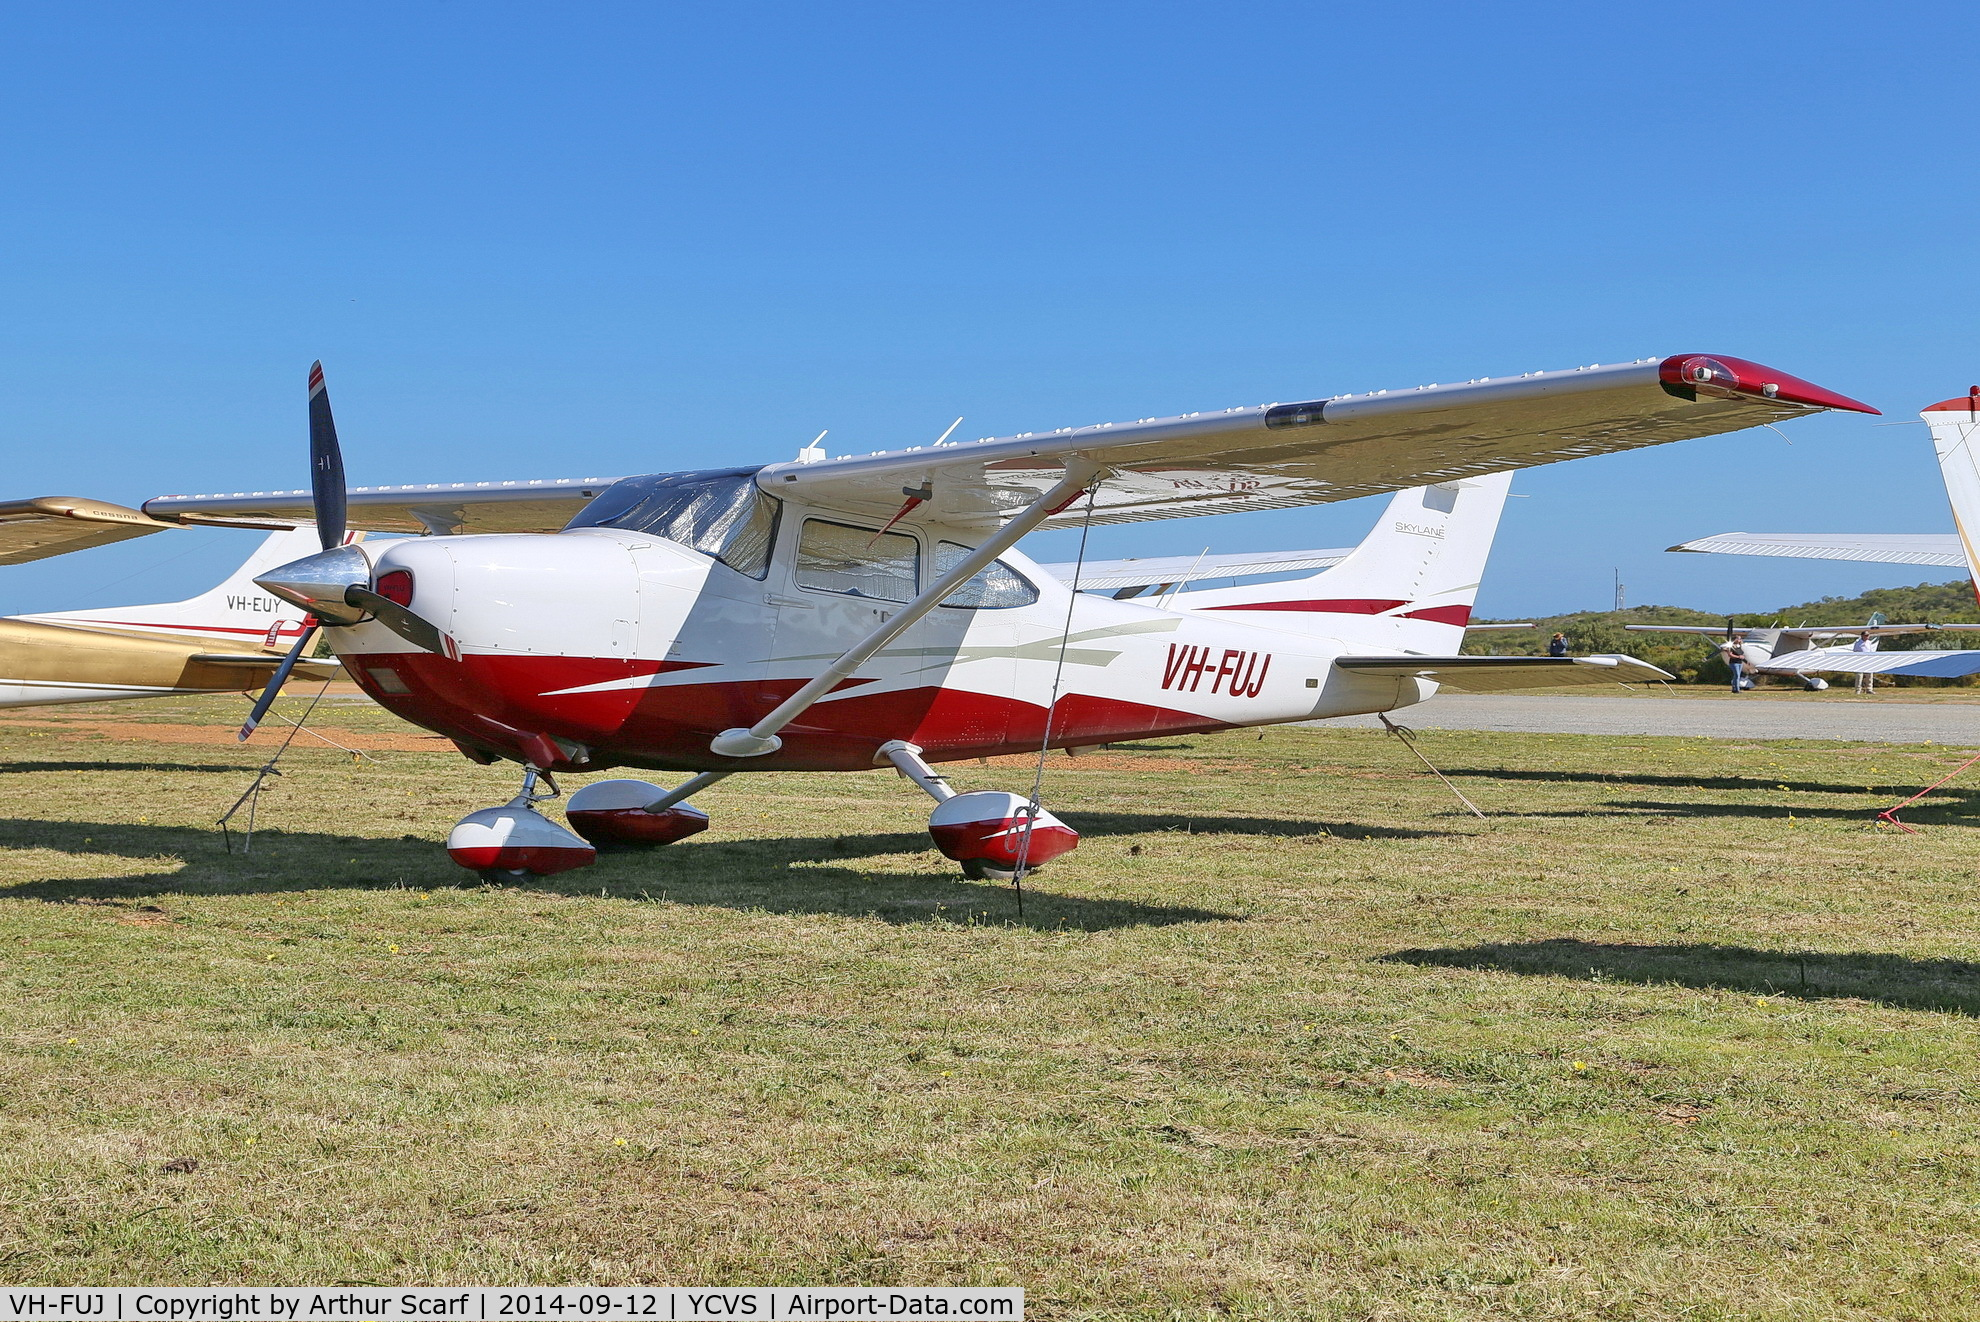 VH-FUJ, 2010 Cessna 182T Skylane C/N 18282267, Cervantes Airport WA. Cessna 182 Association of Australia fly in 2014.